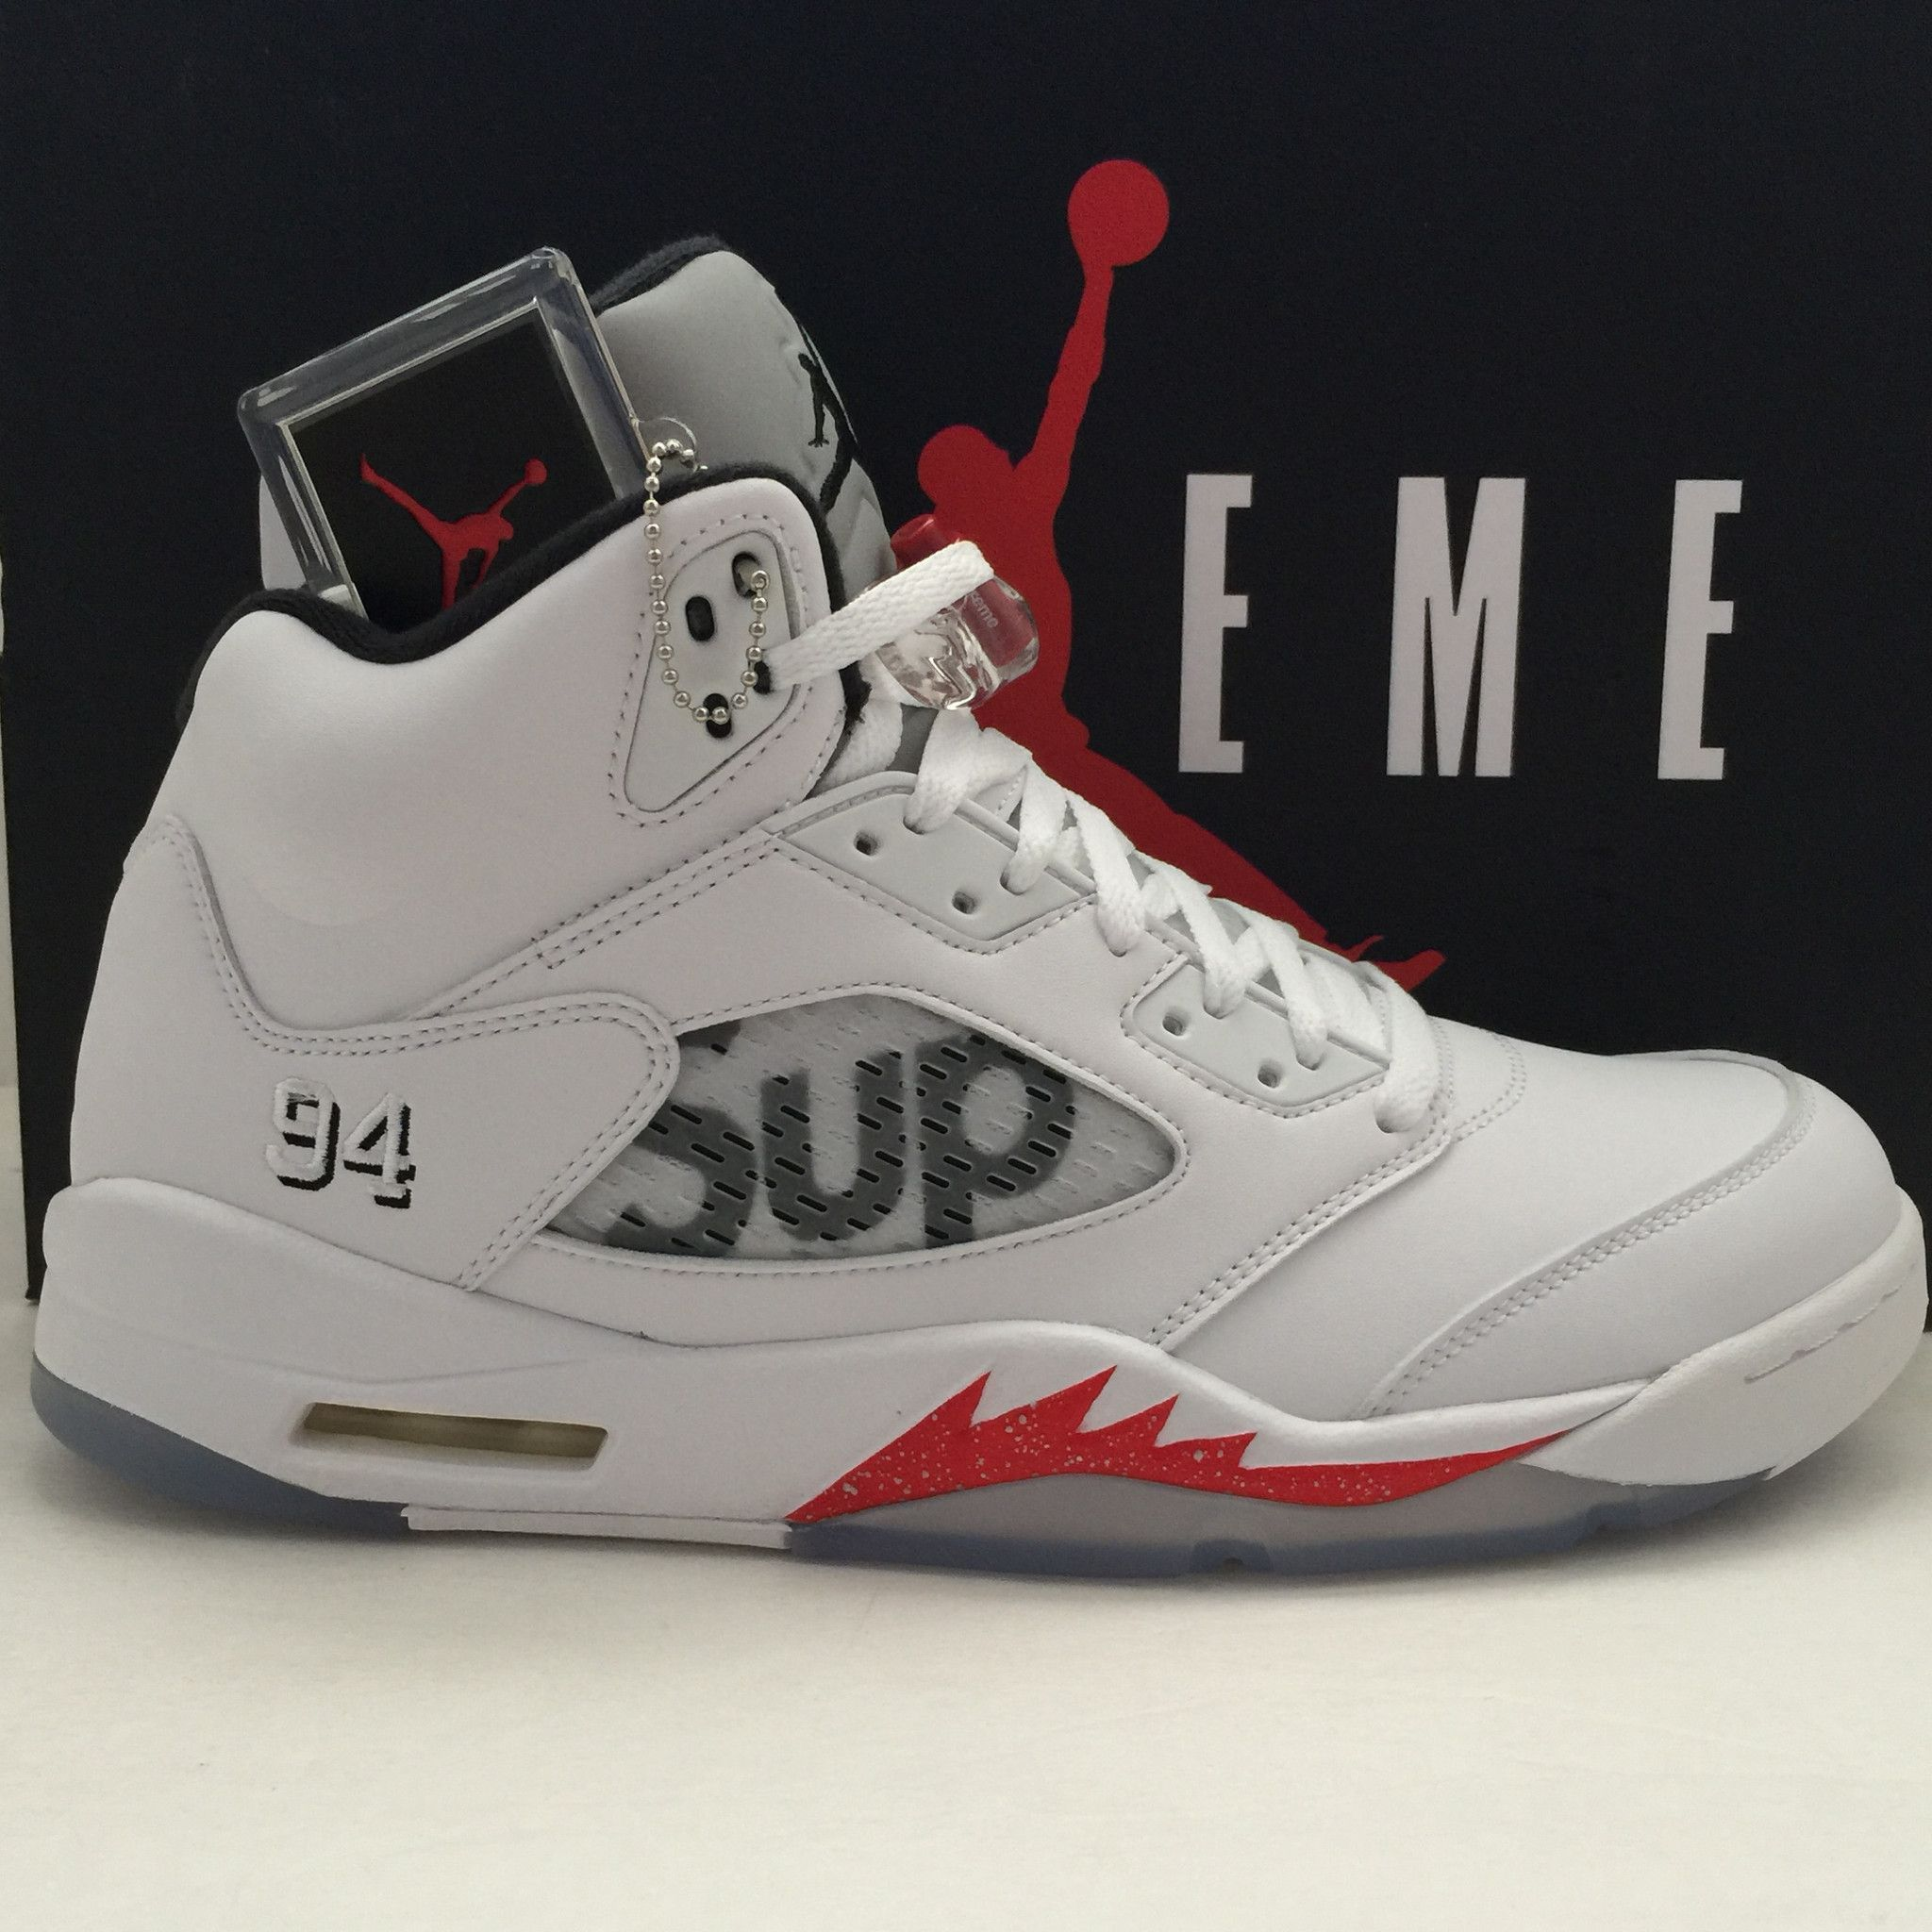 huge discount 60590 91a11 DS Nike Air Jordan 5 V Retro x Supreme White Size 11 | The ...